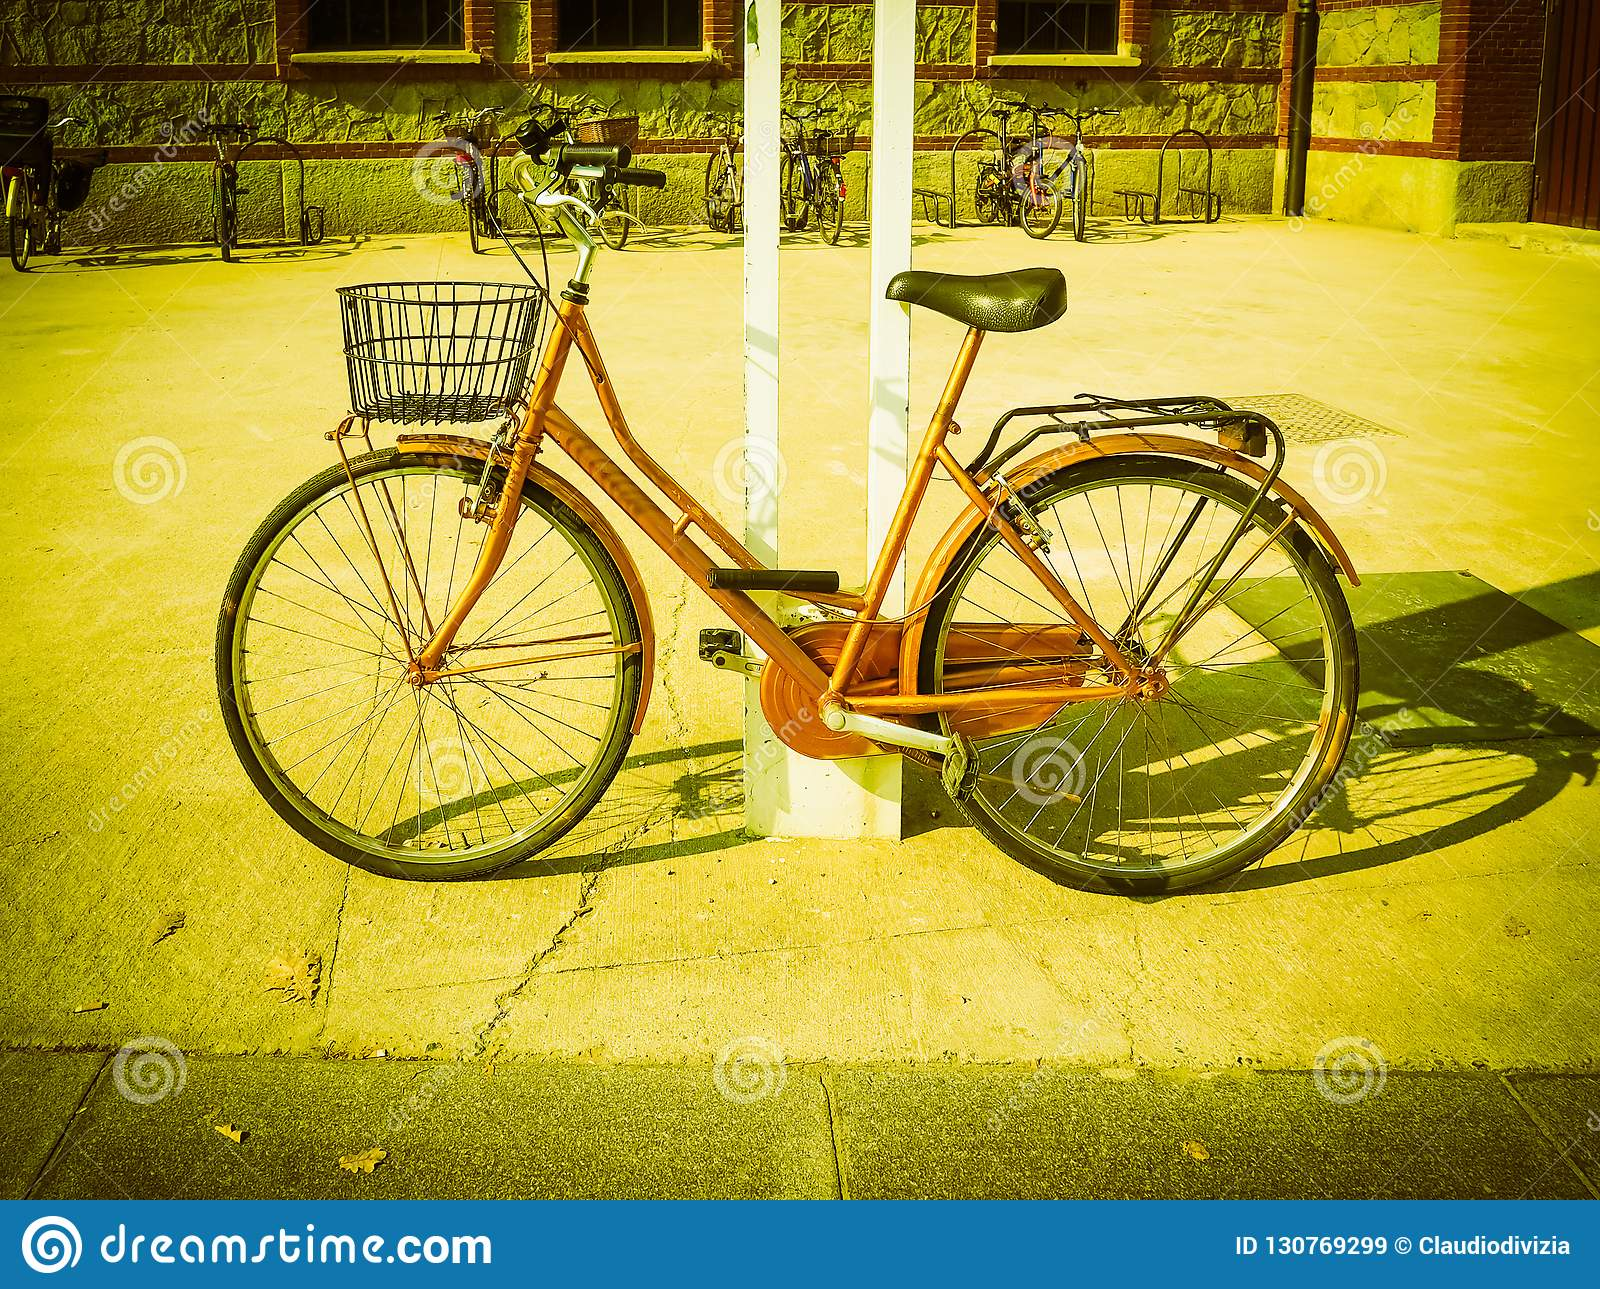 Bike Parked Outdoor Vintage Retro Stock Image - Image of